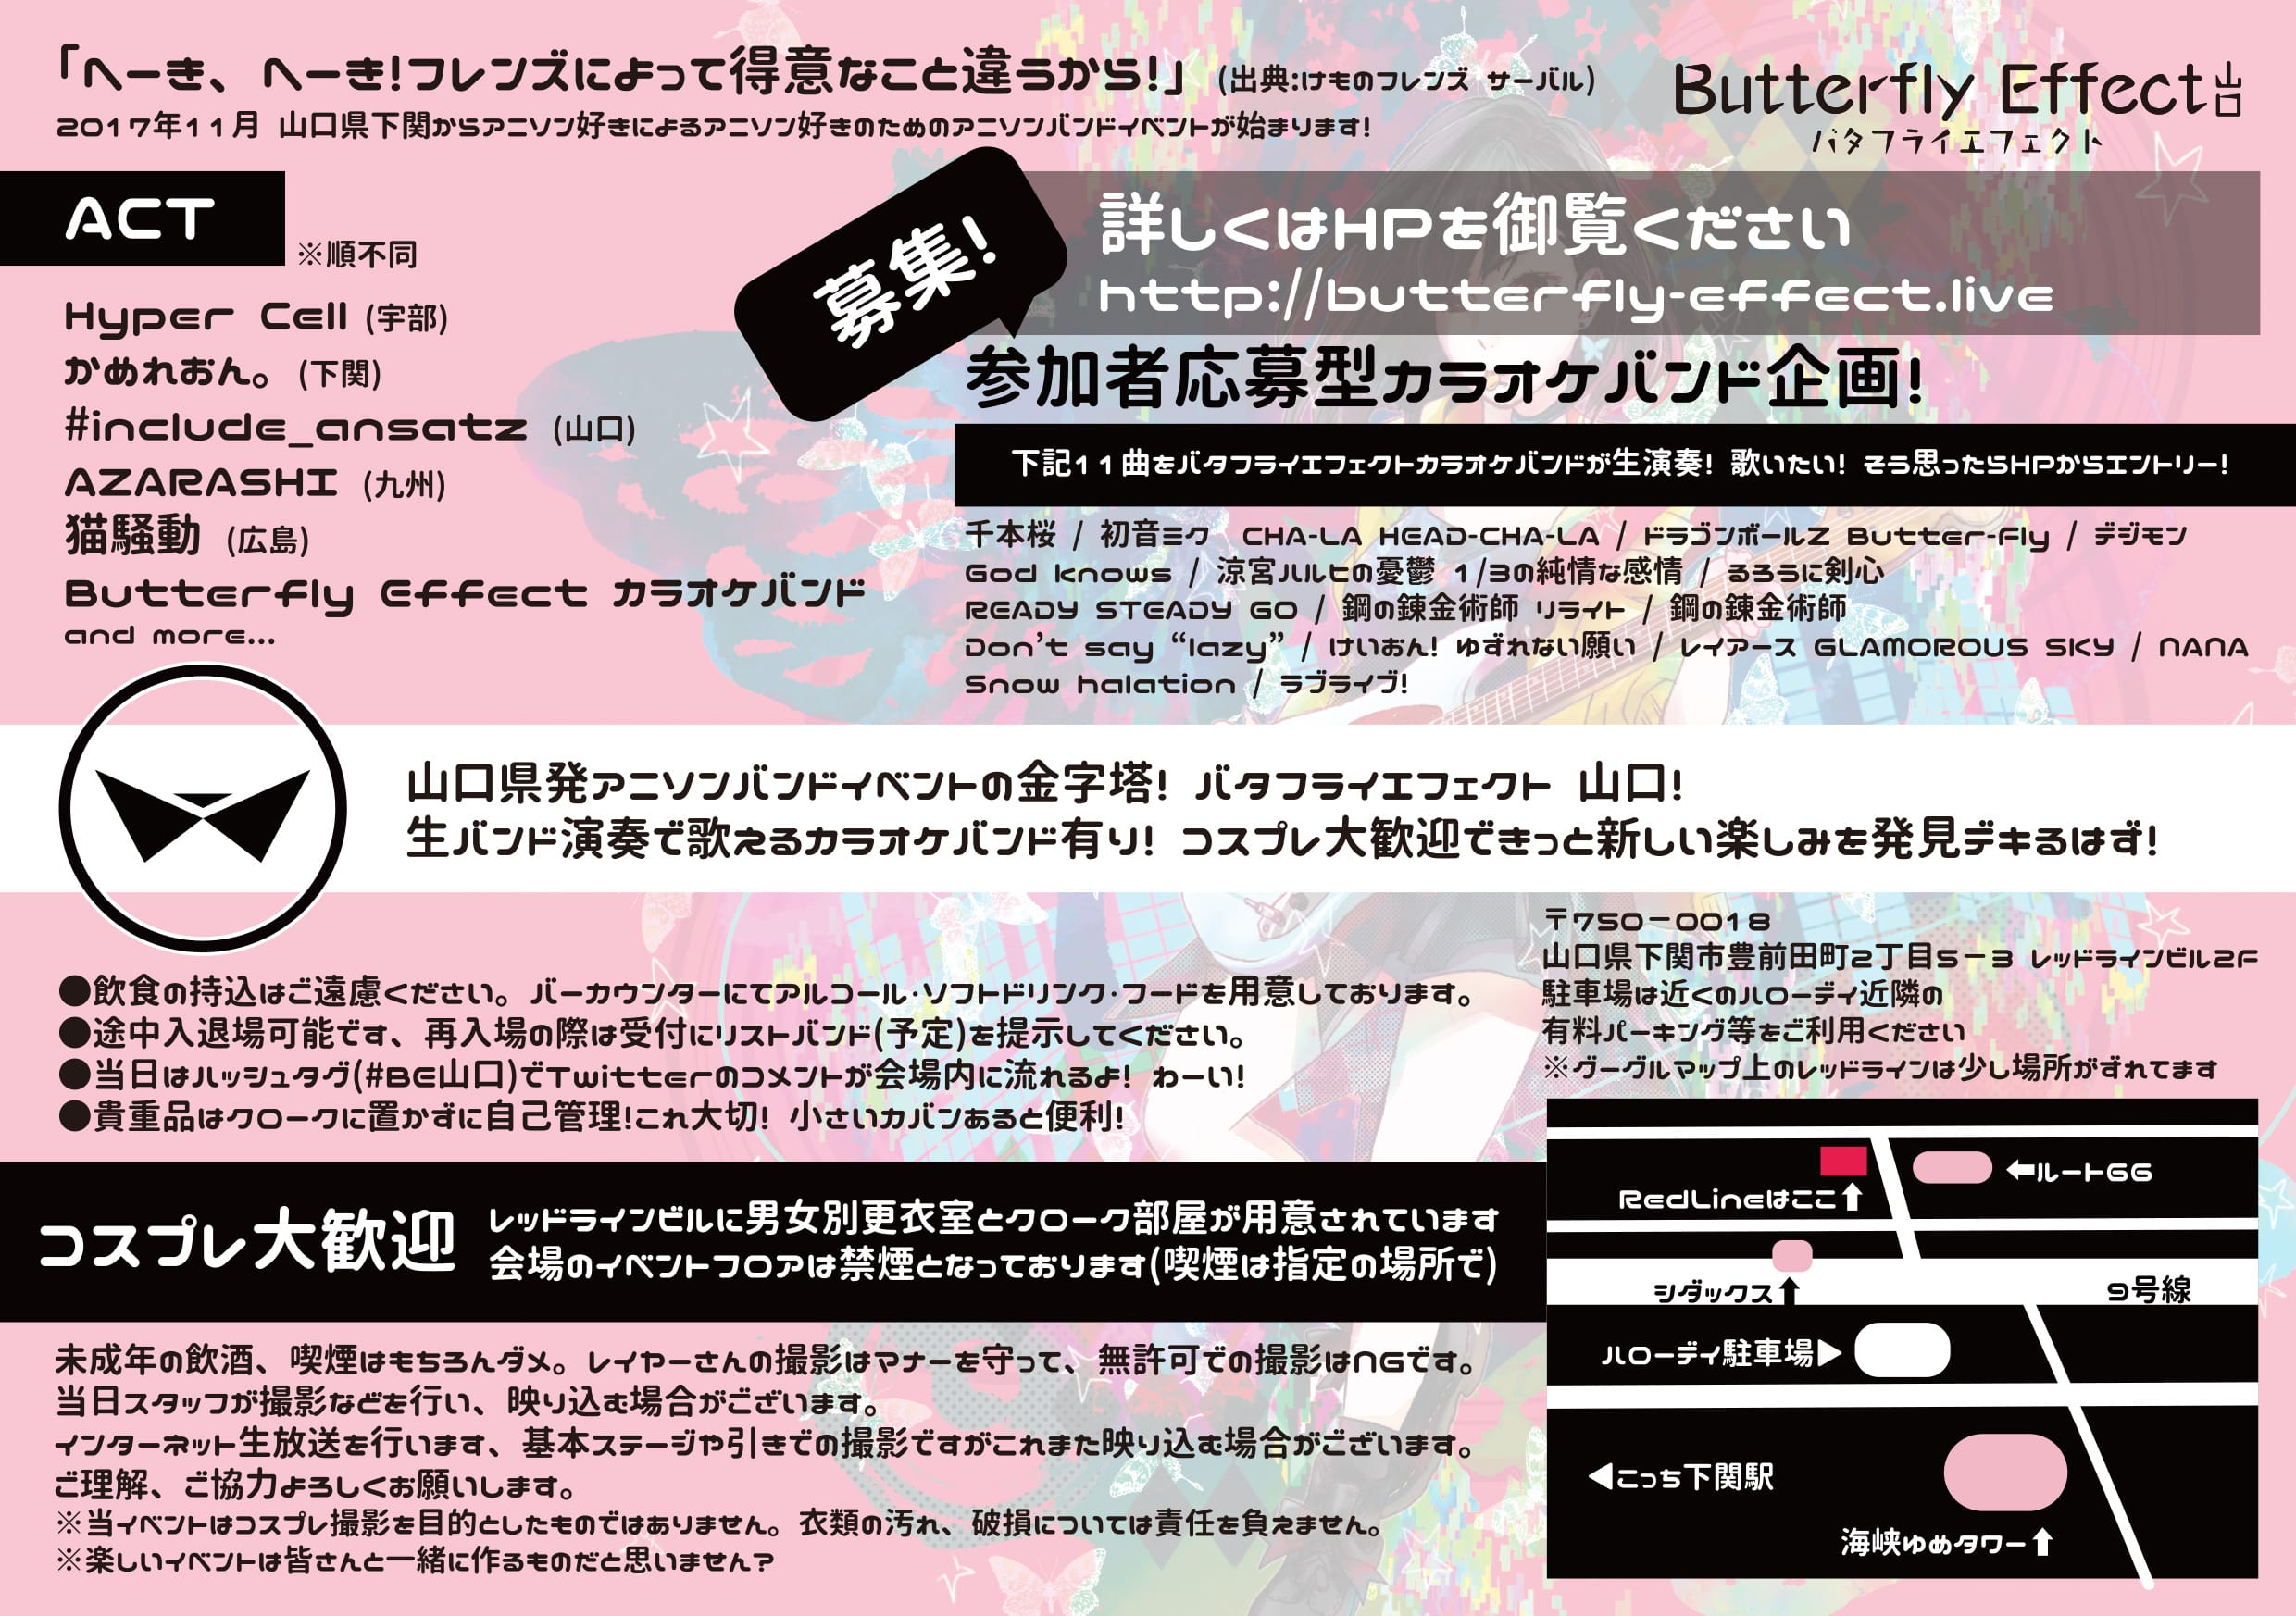 Butterfly Effect 山口 Vol.1フライヤー うら